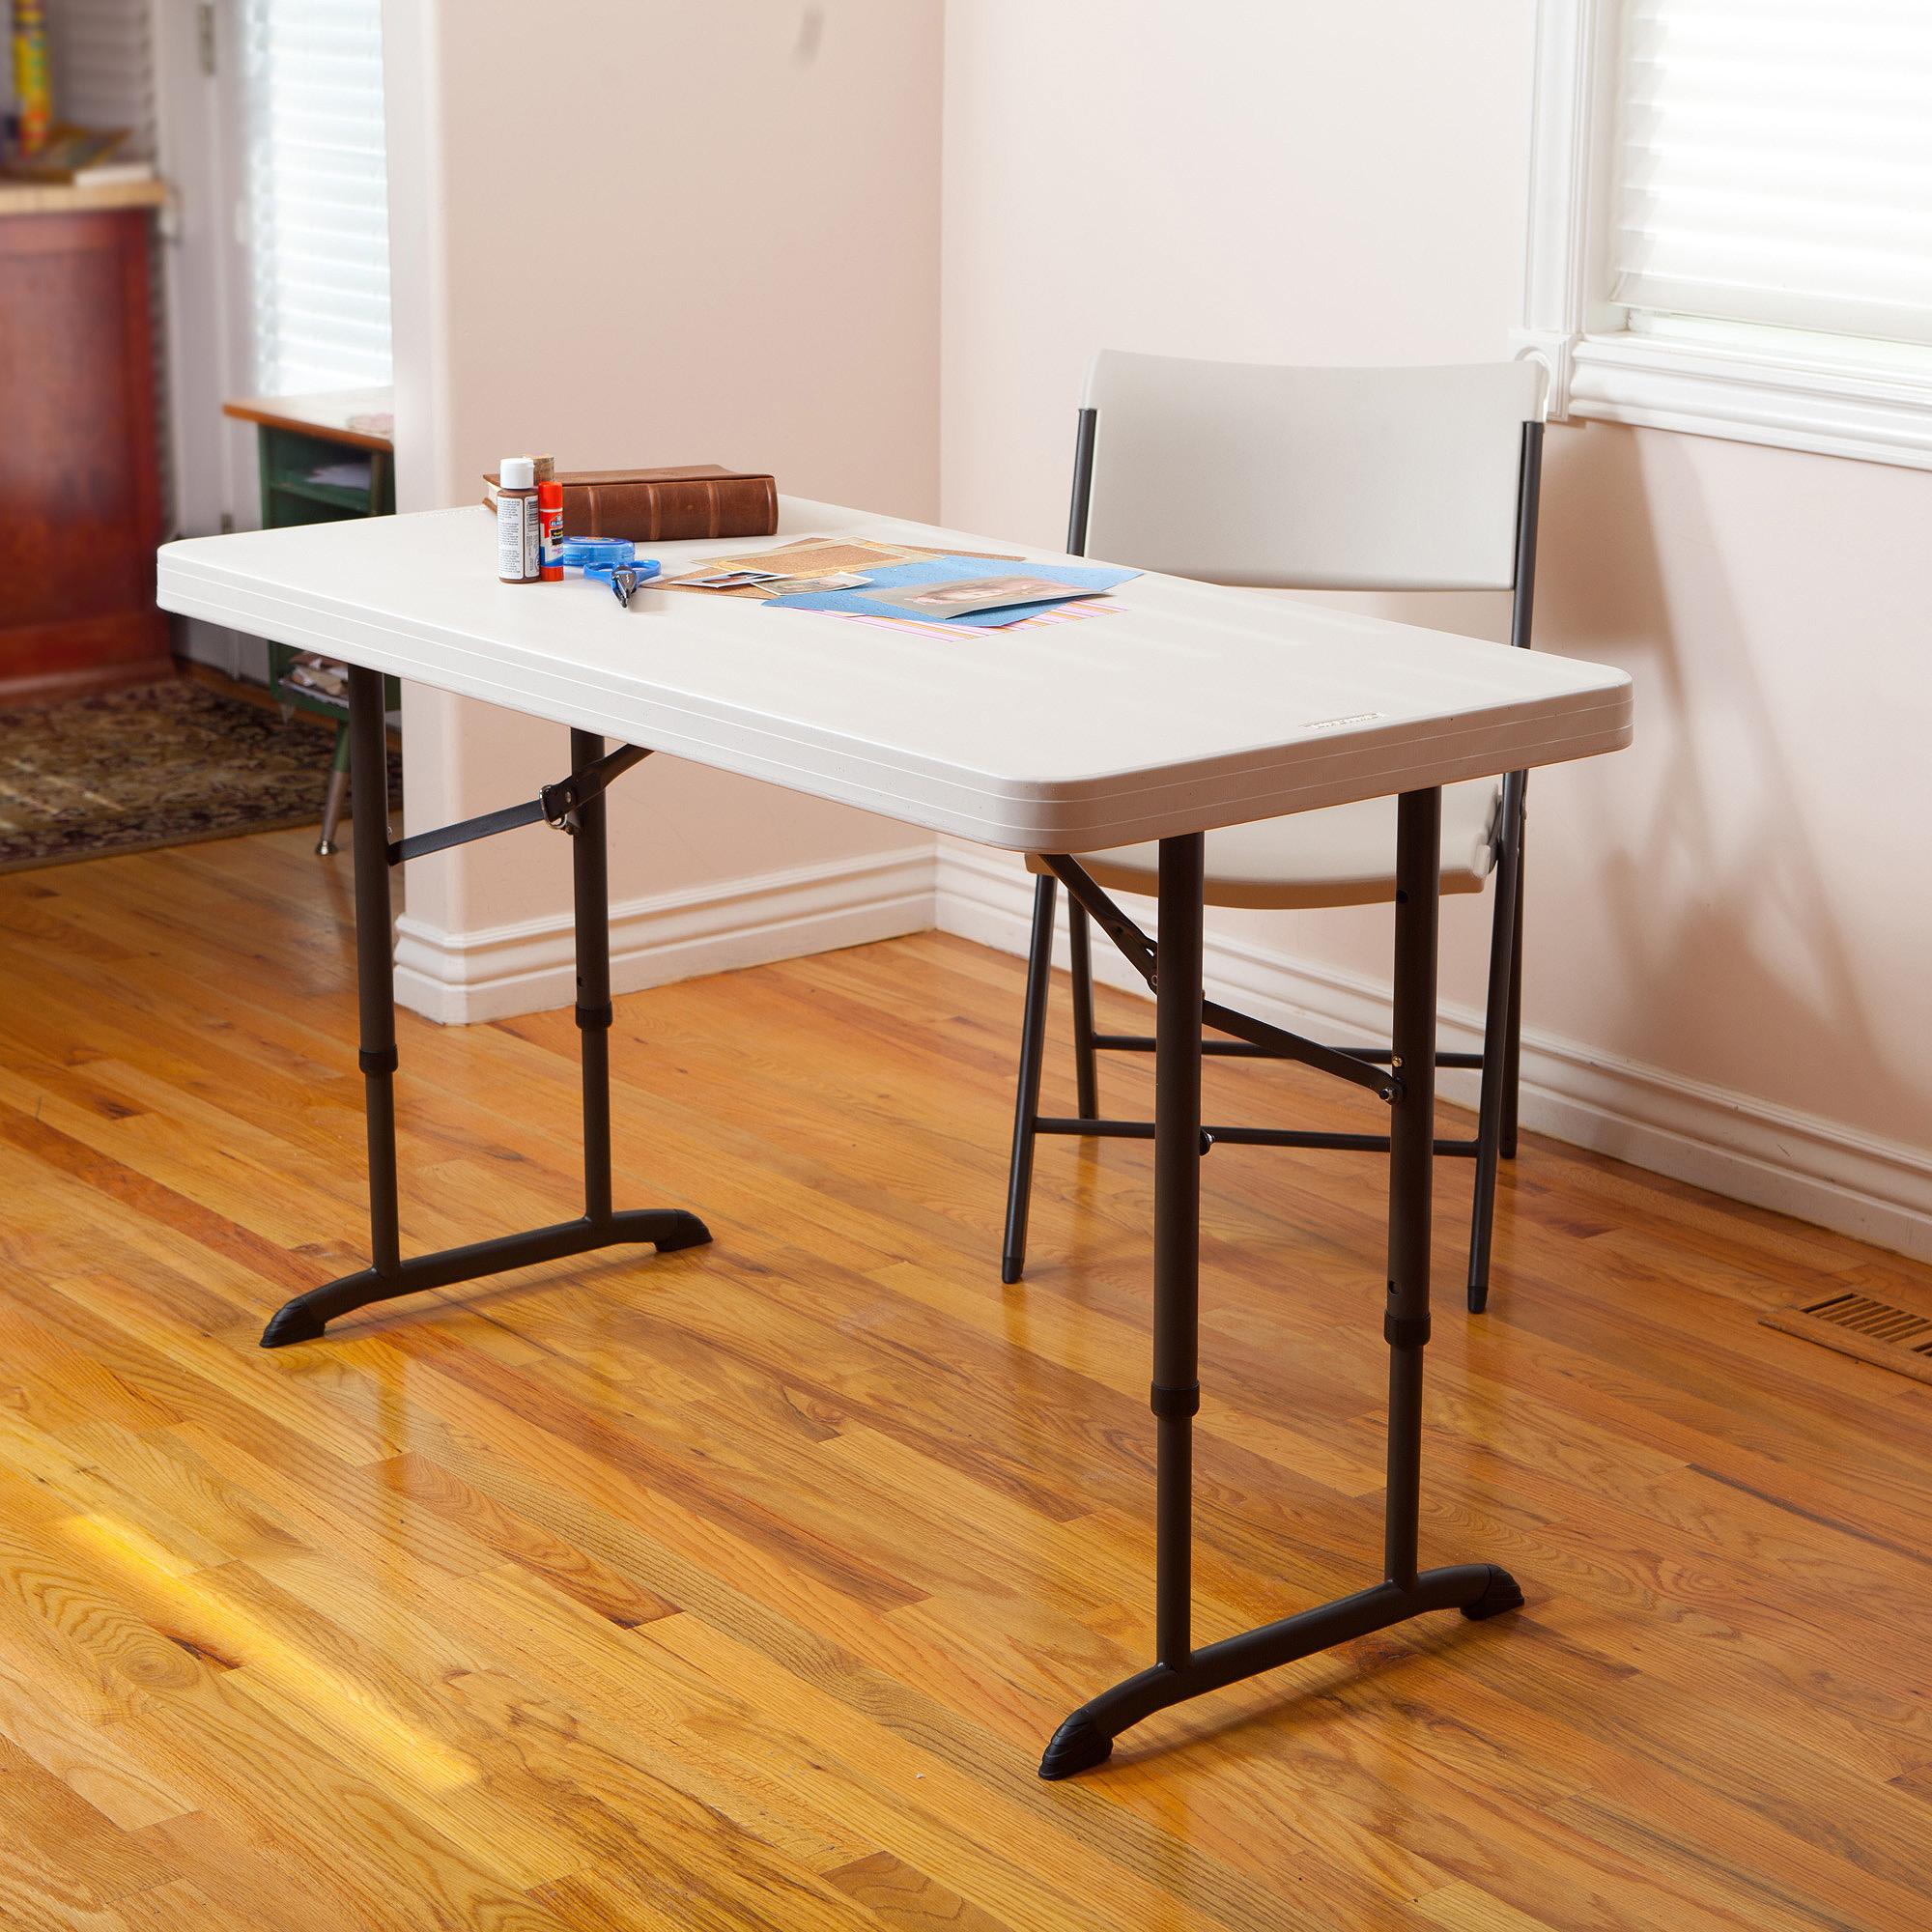 Lifetime 4 Adjustable Folding Table White Granite Walmart